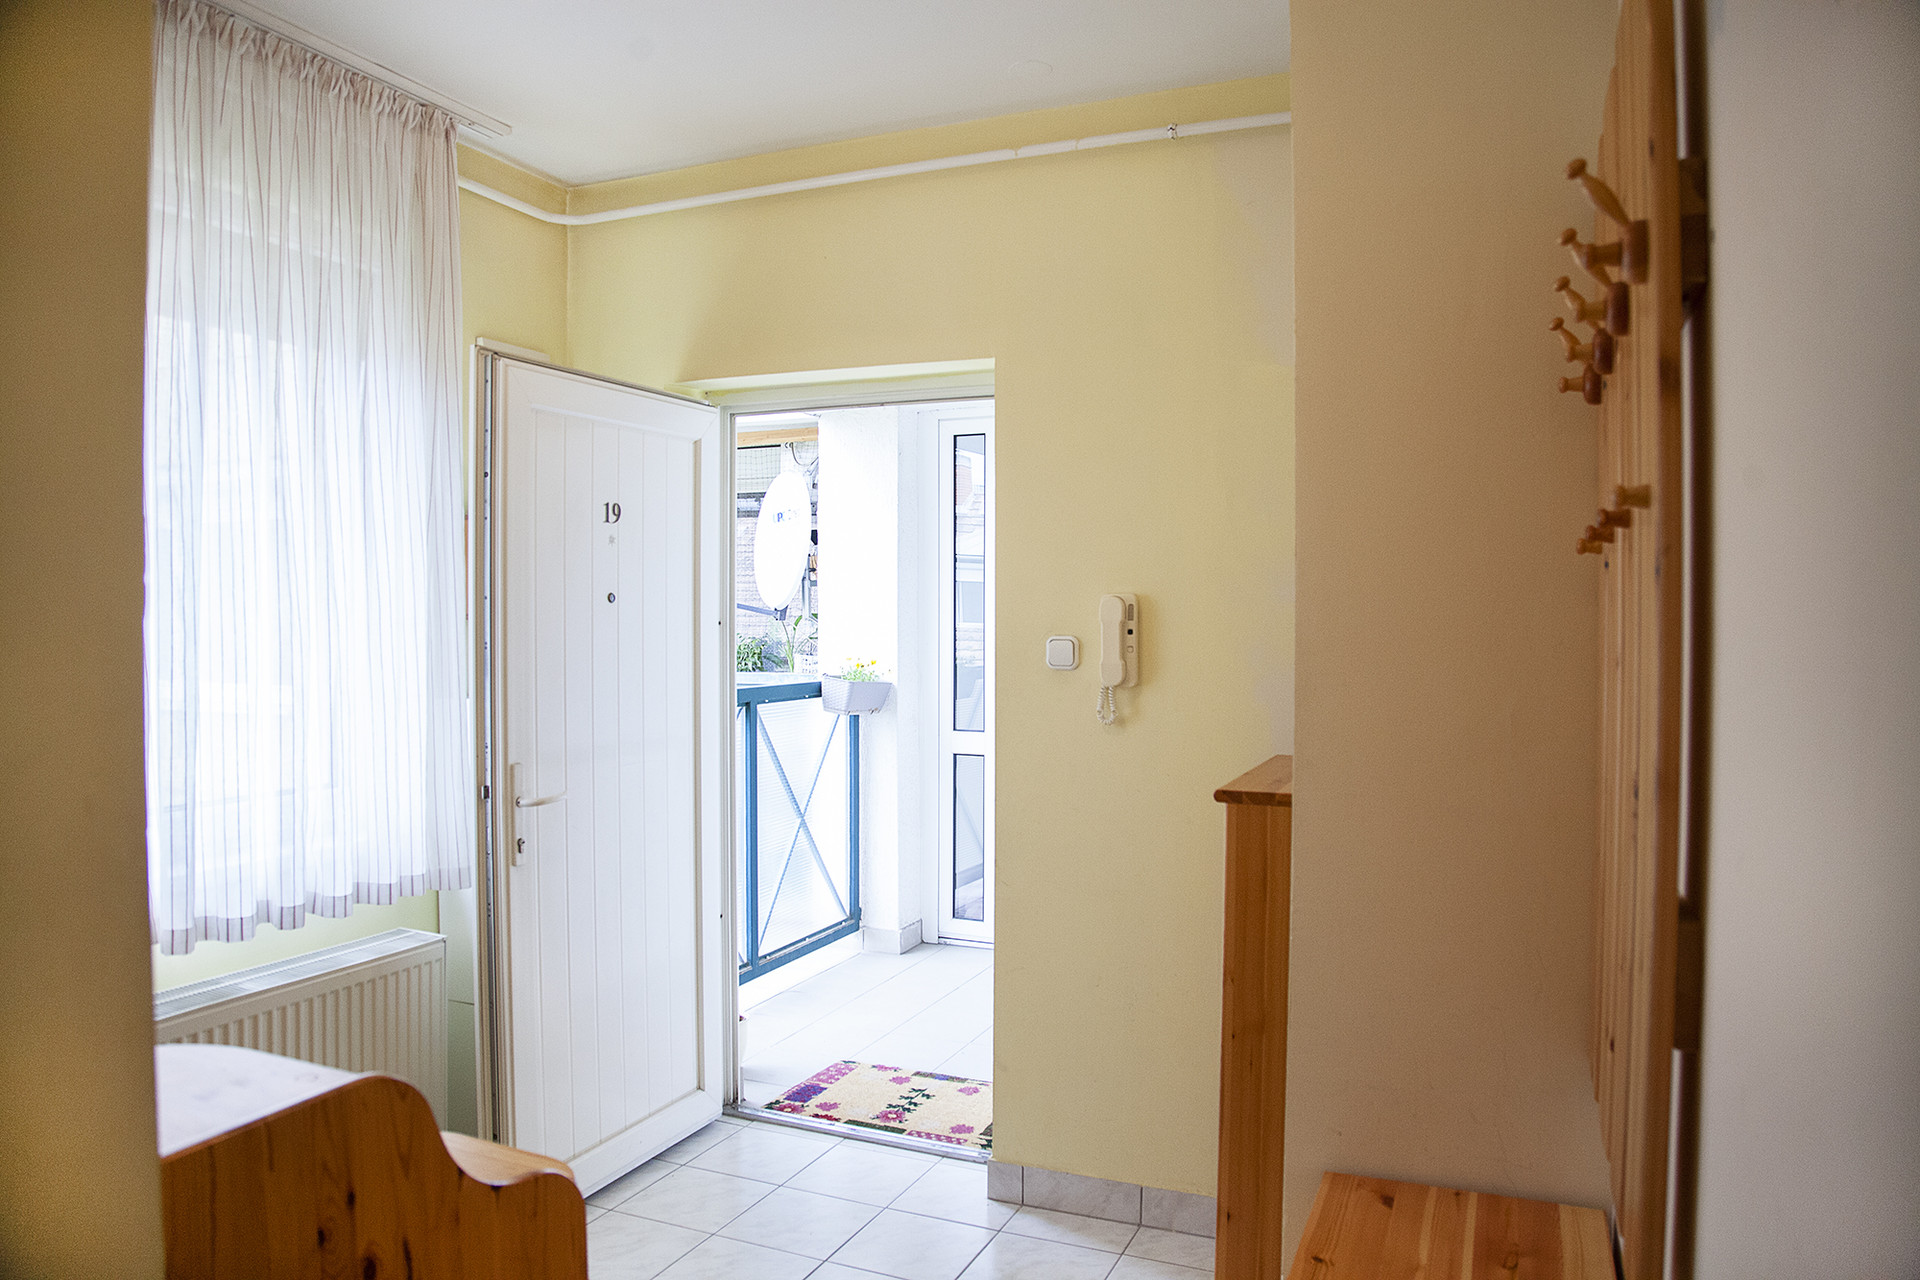 A Guide To Finding A Apartment In Budapest